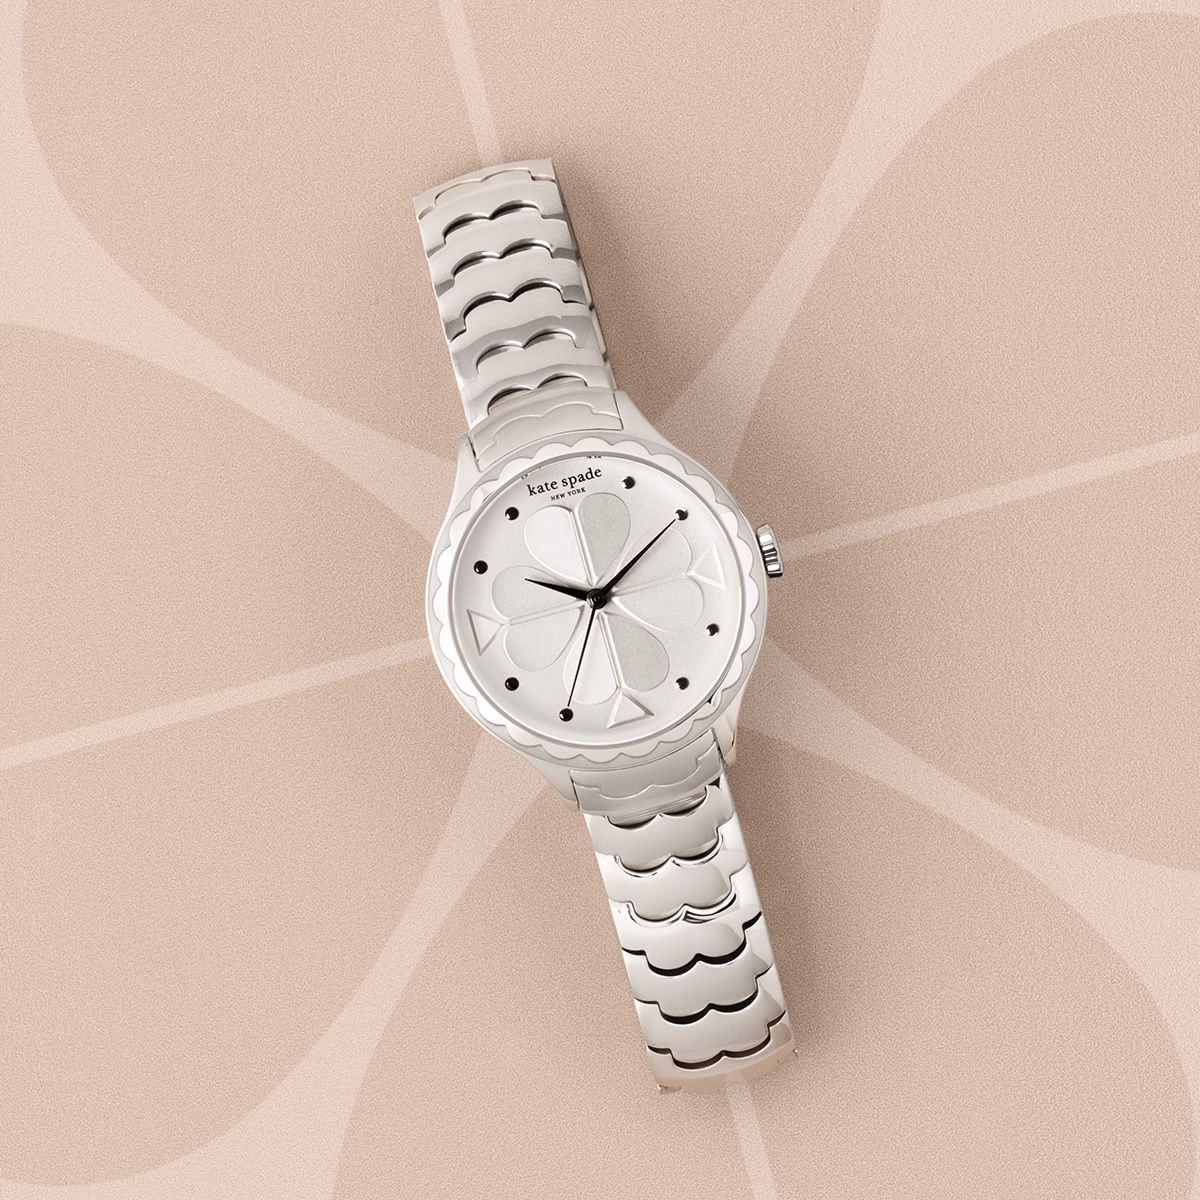 d1bc164cdd4 Kate Spade Watches - Macy s